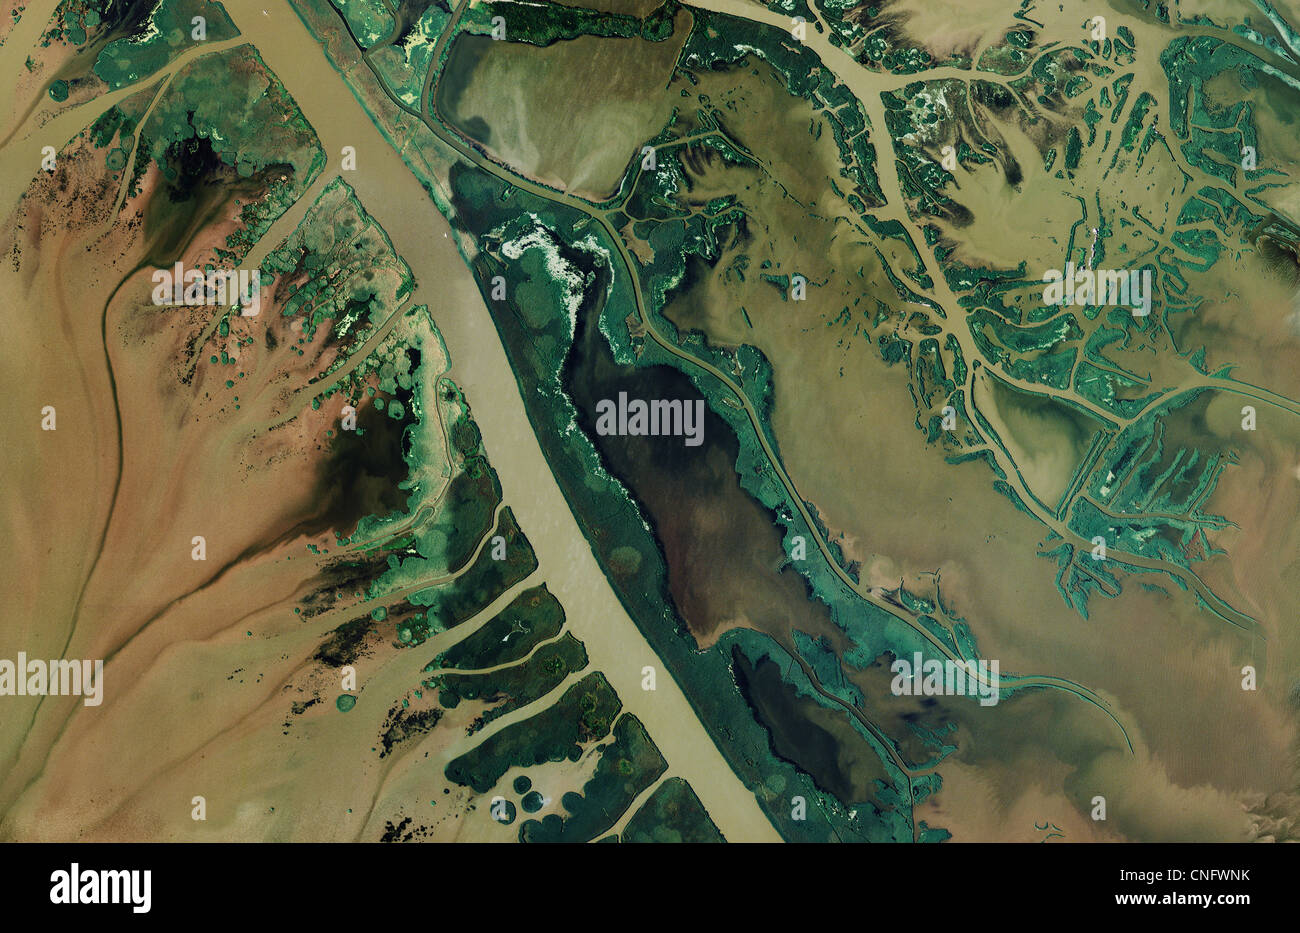 Aerial Photo Map Of Mississippi River Delta Louisiana Stock Photo - Mississippi river delta map